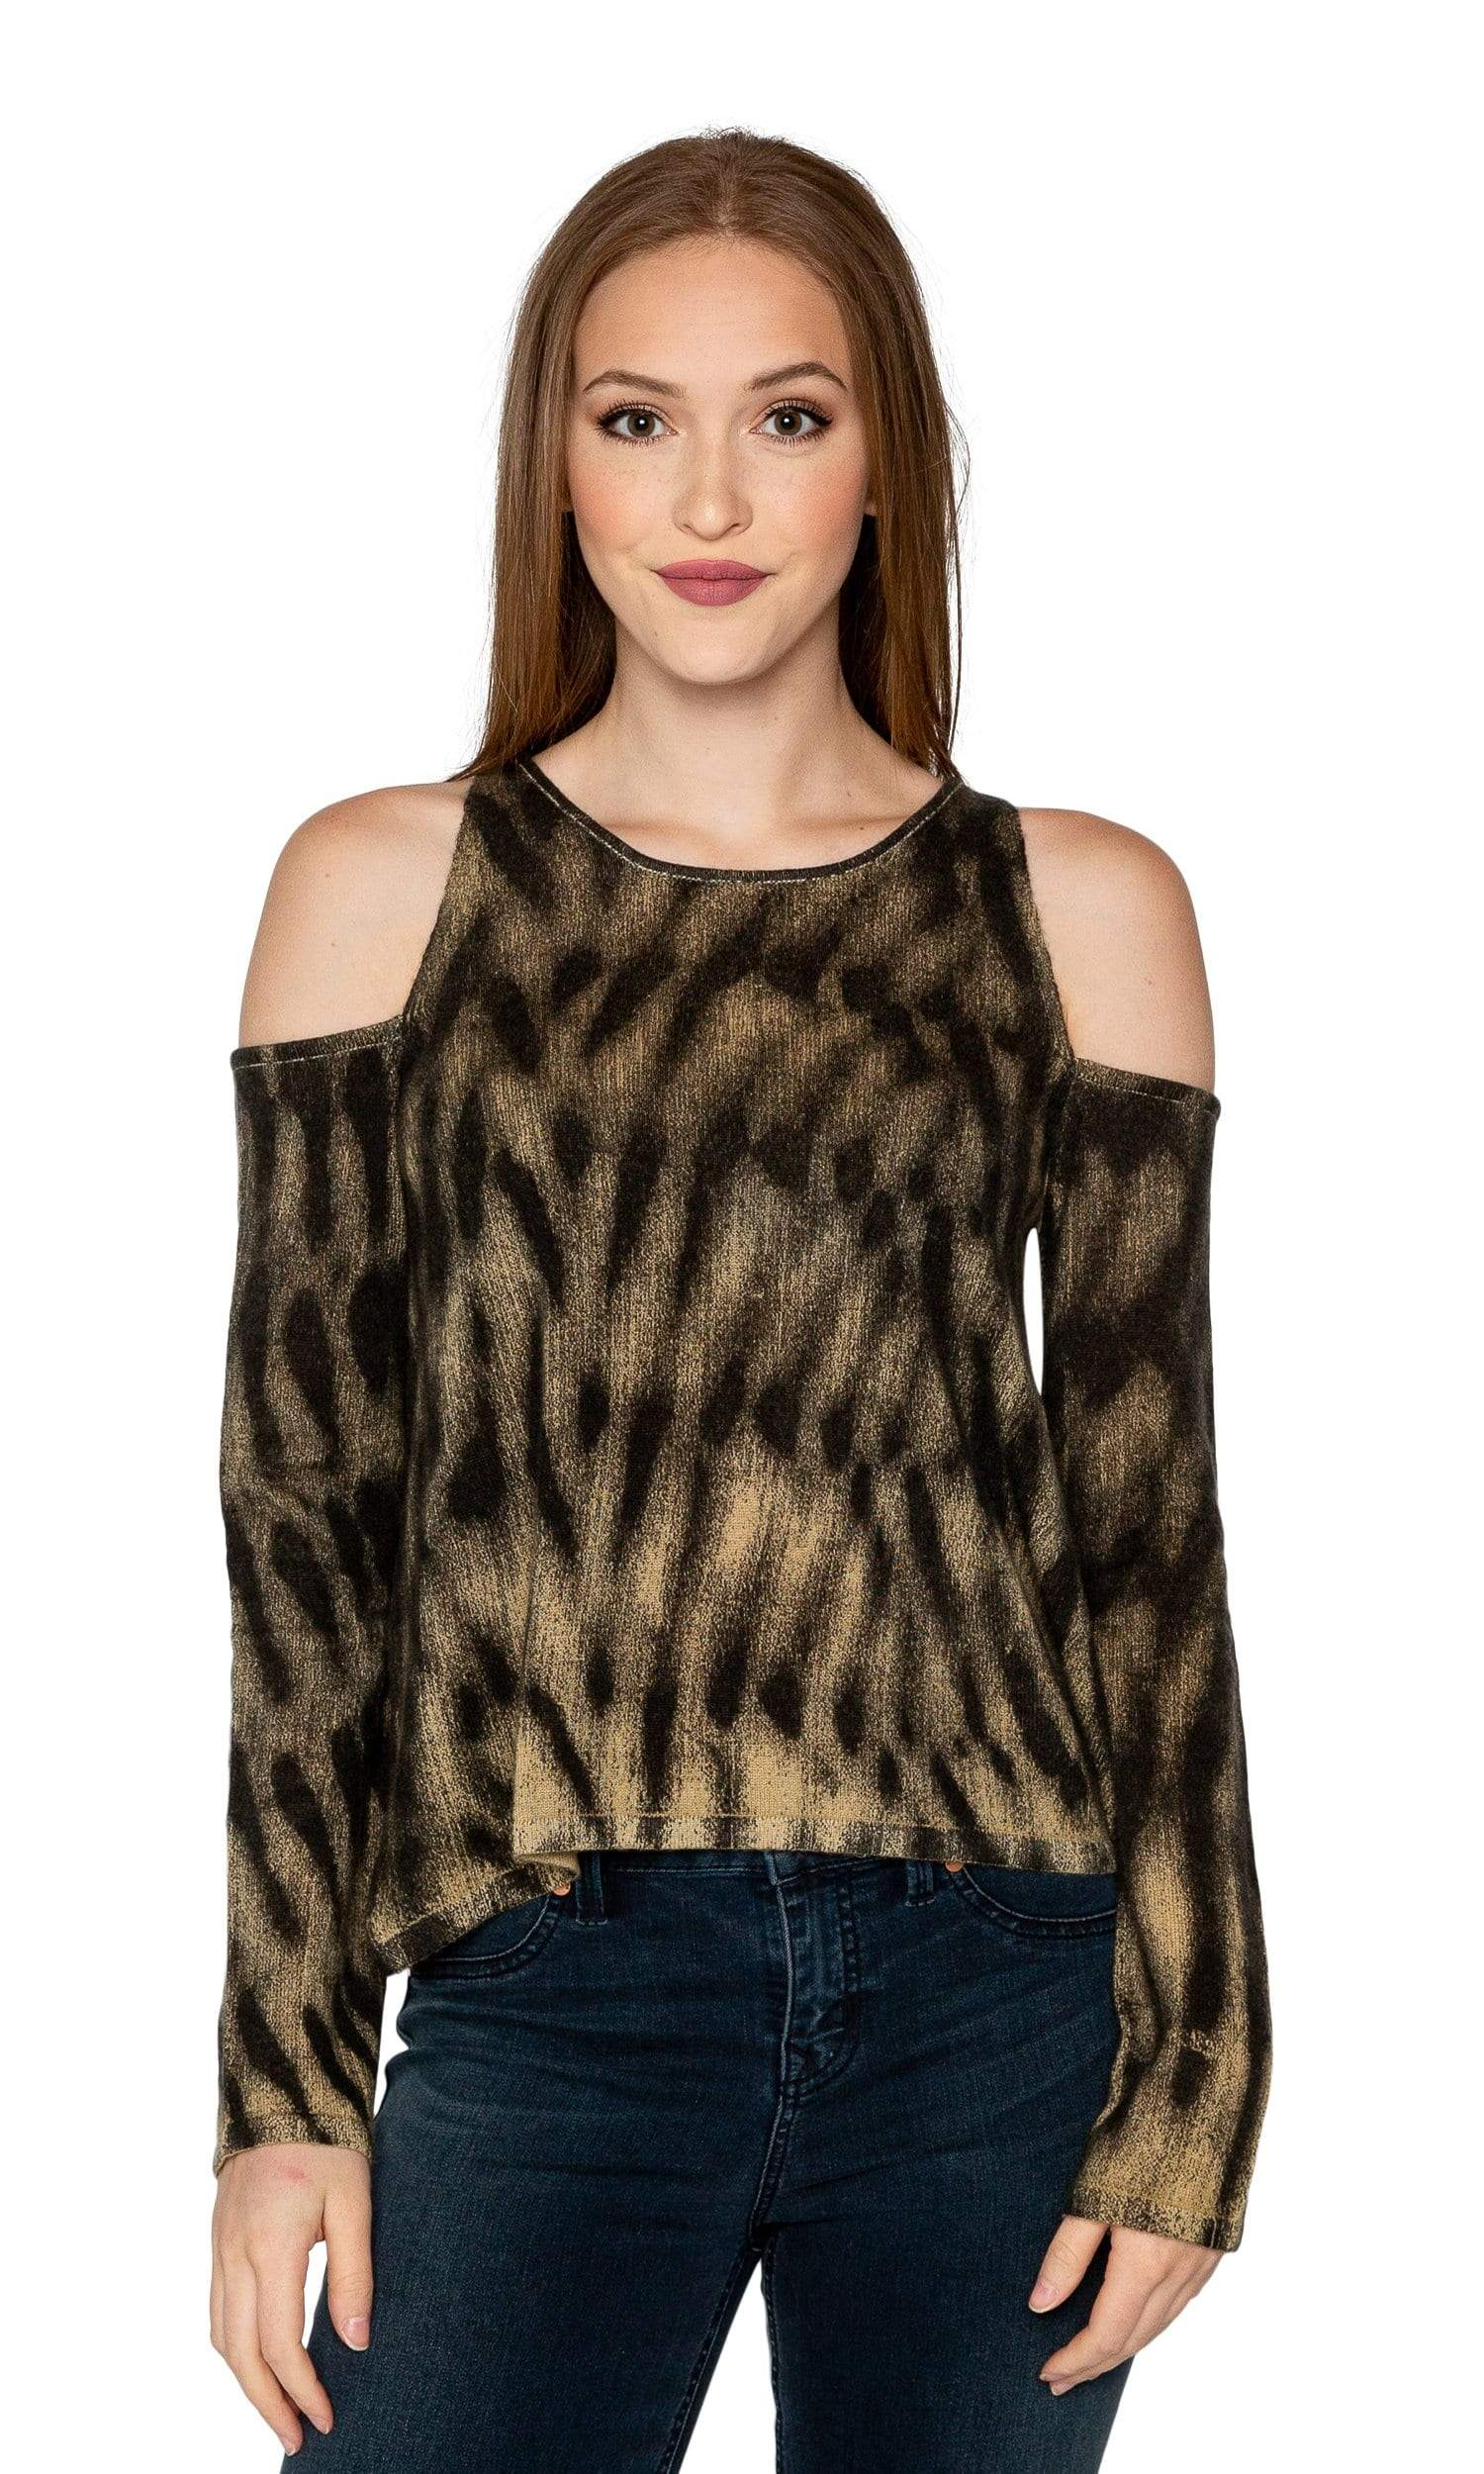 Knitwit Cold Shoulder Cashmere Sweater - Black / Brown